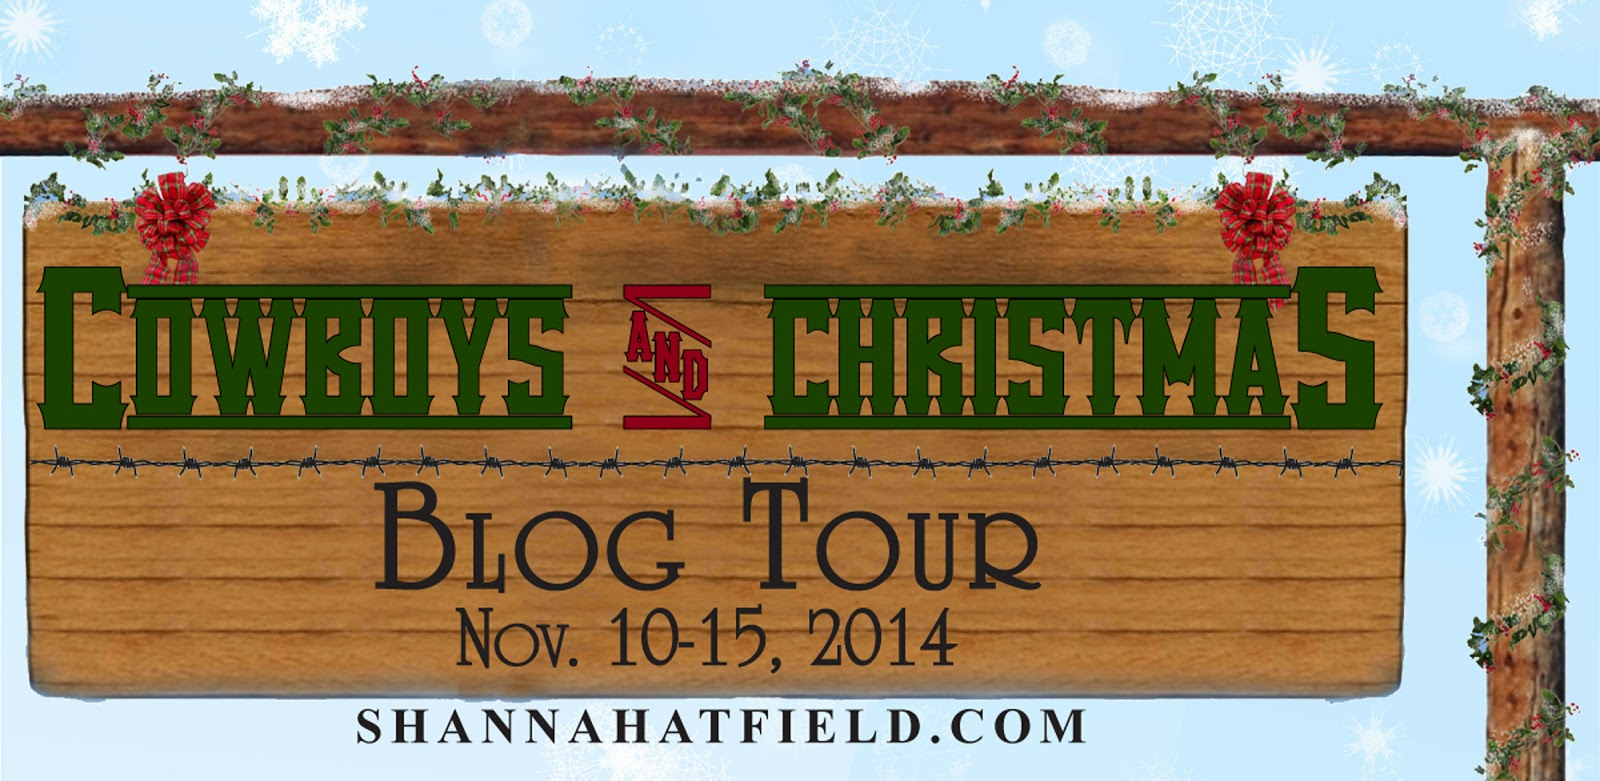 http://shannahatfield.com/contact/media-kit/cowboys-christmas-blog-tour/